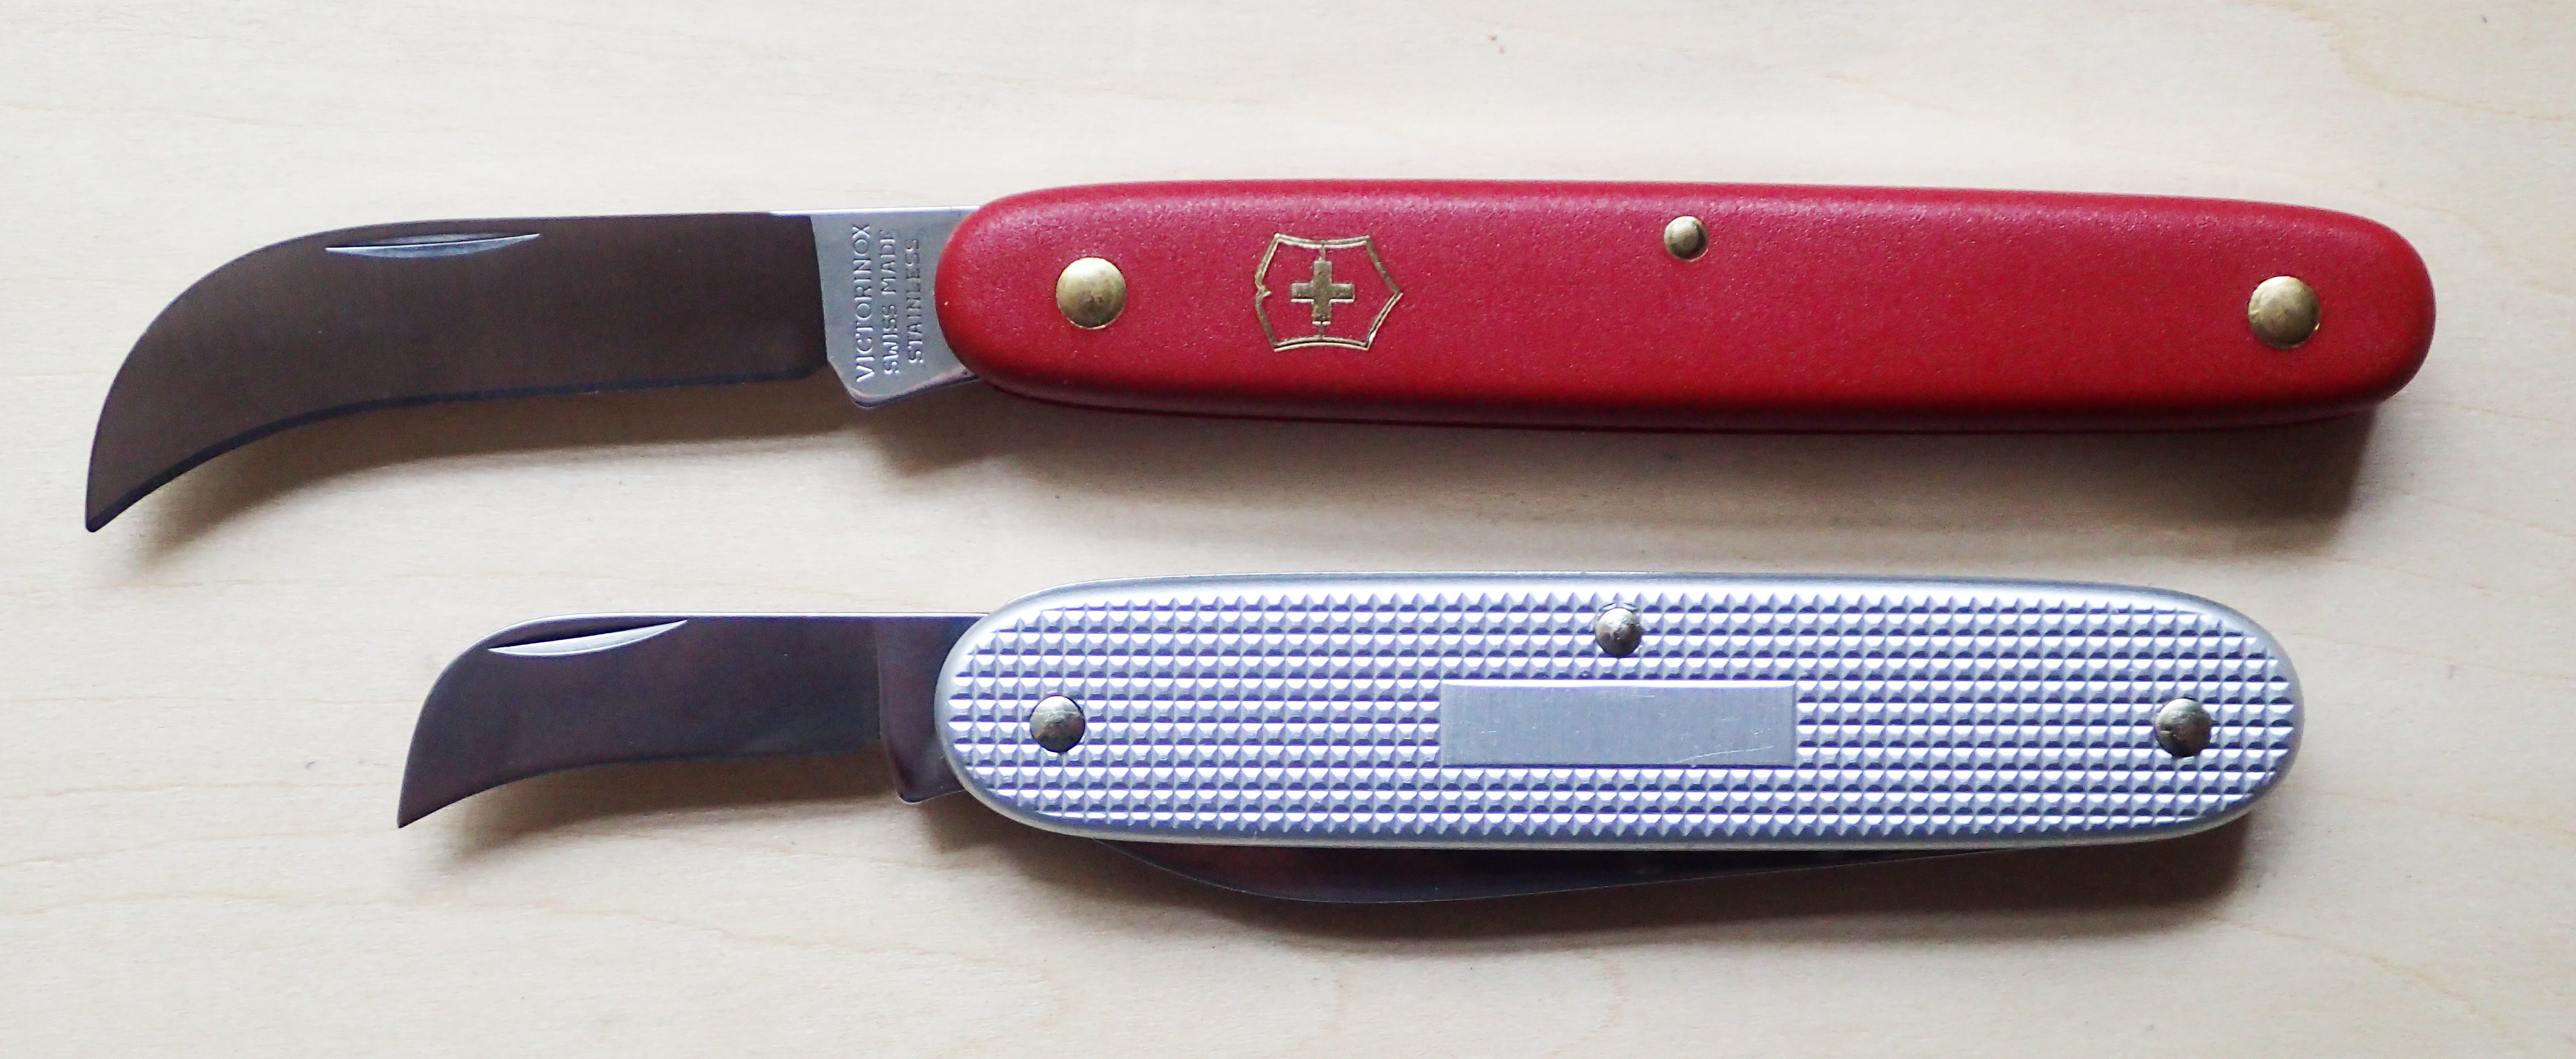 Hawksbill blade on Small Pruner compared to that on the Pioneer Swiss Army 2